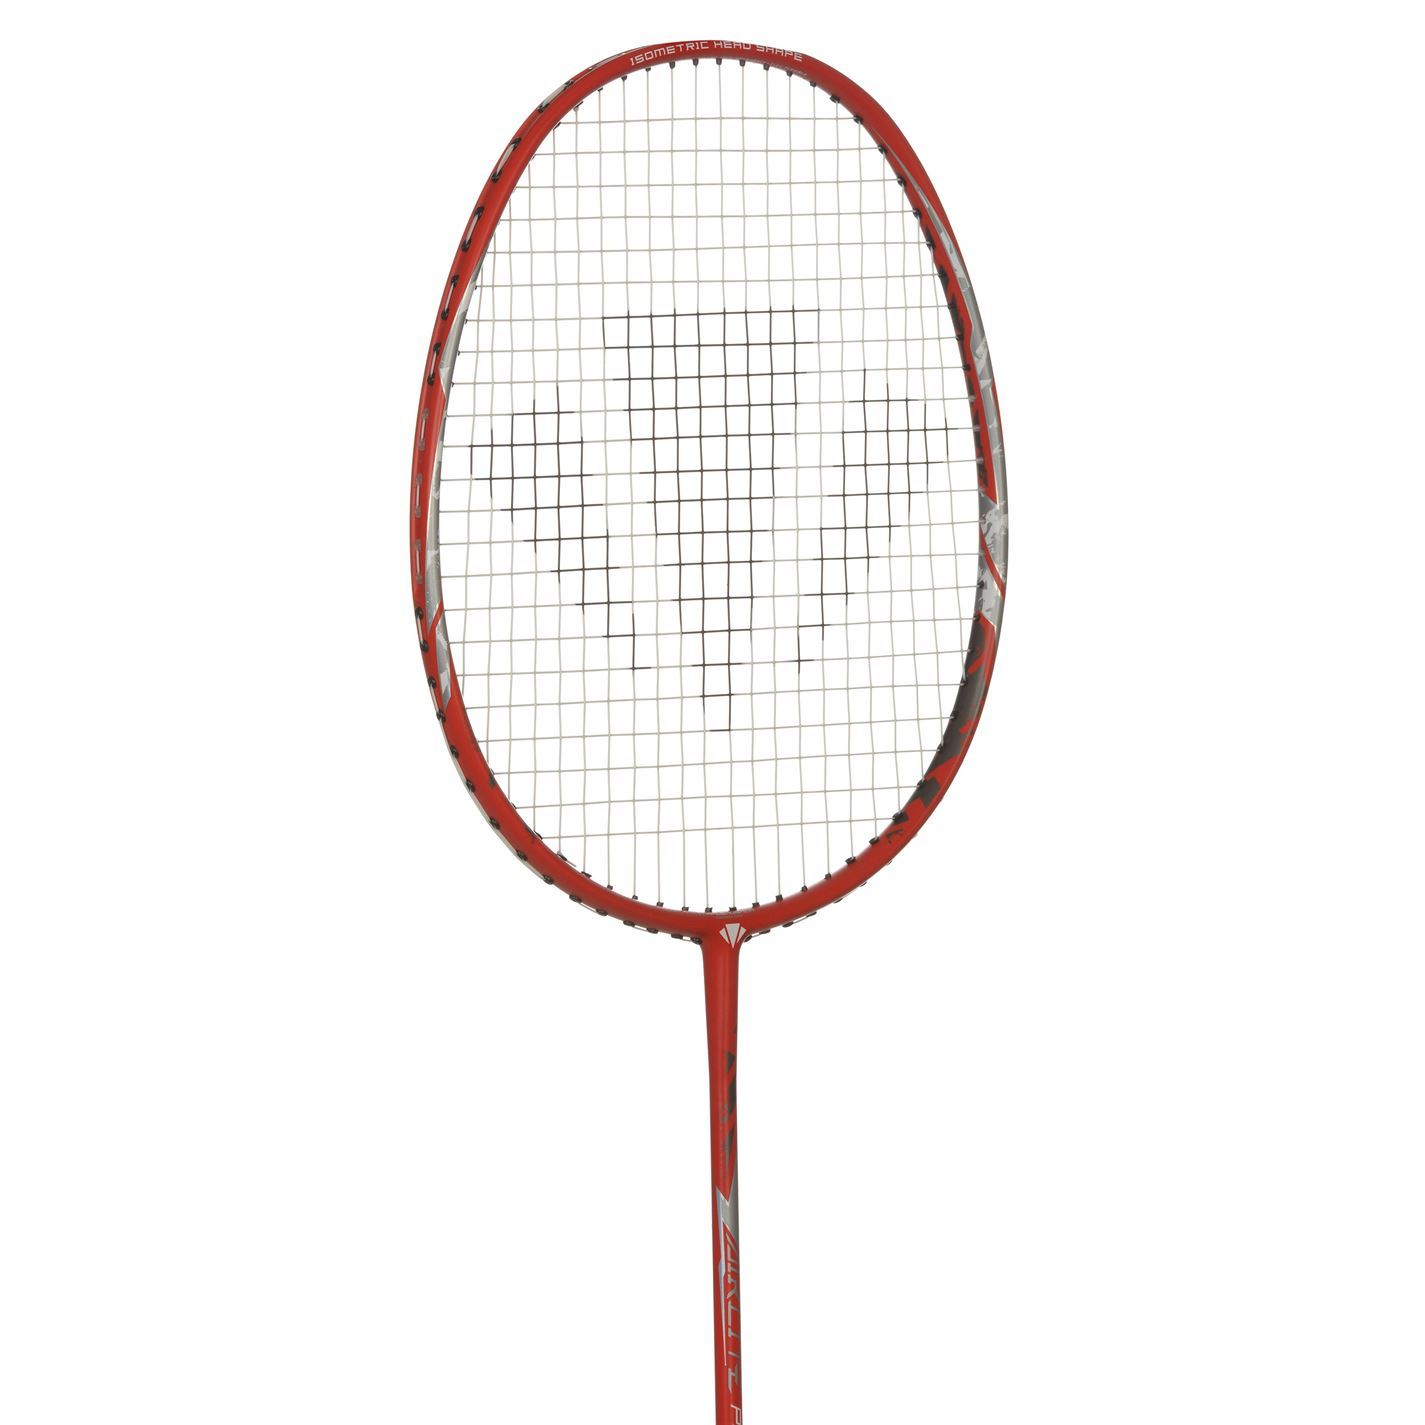 Carlton Airlite Pow Badminton Racket Play Game Court Sports Powerblade Pro Boot Only The Power Is Ideal For Players Just Getting Into And Provides Exceptional Results When On